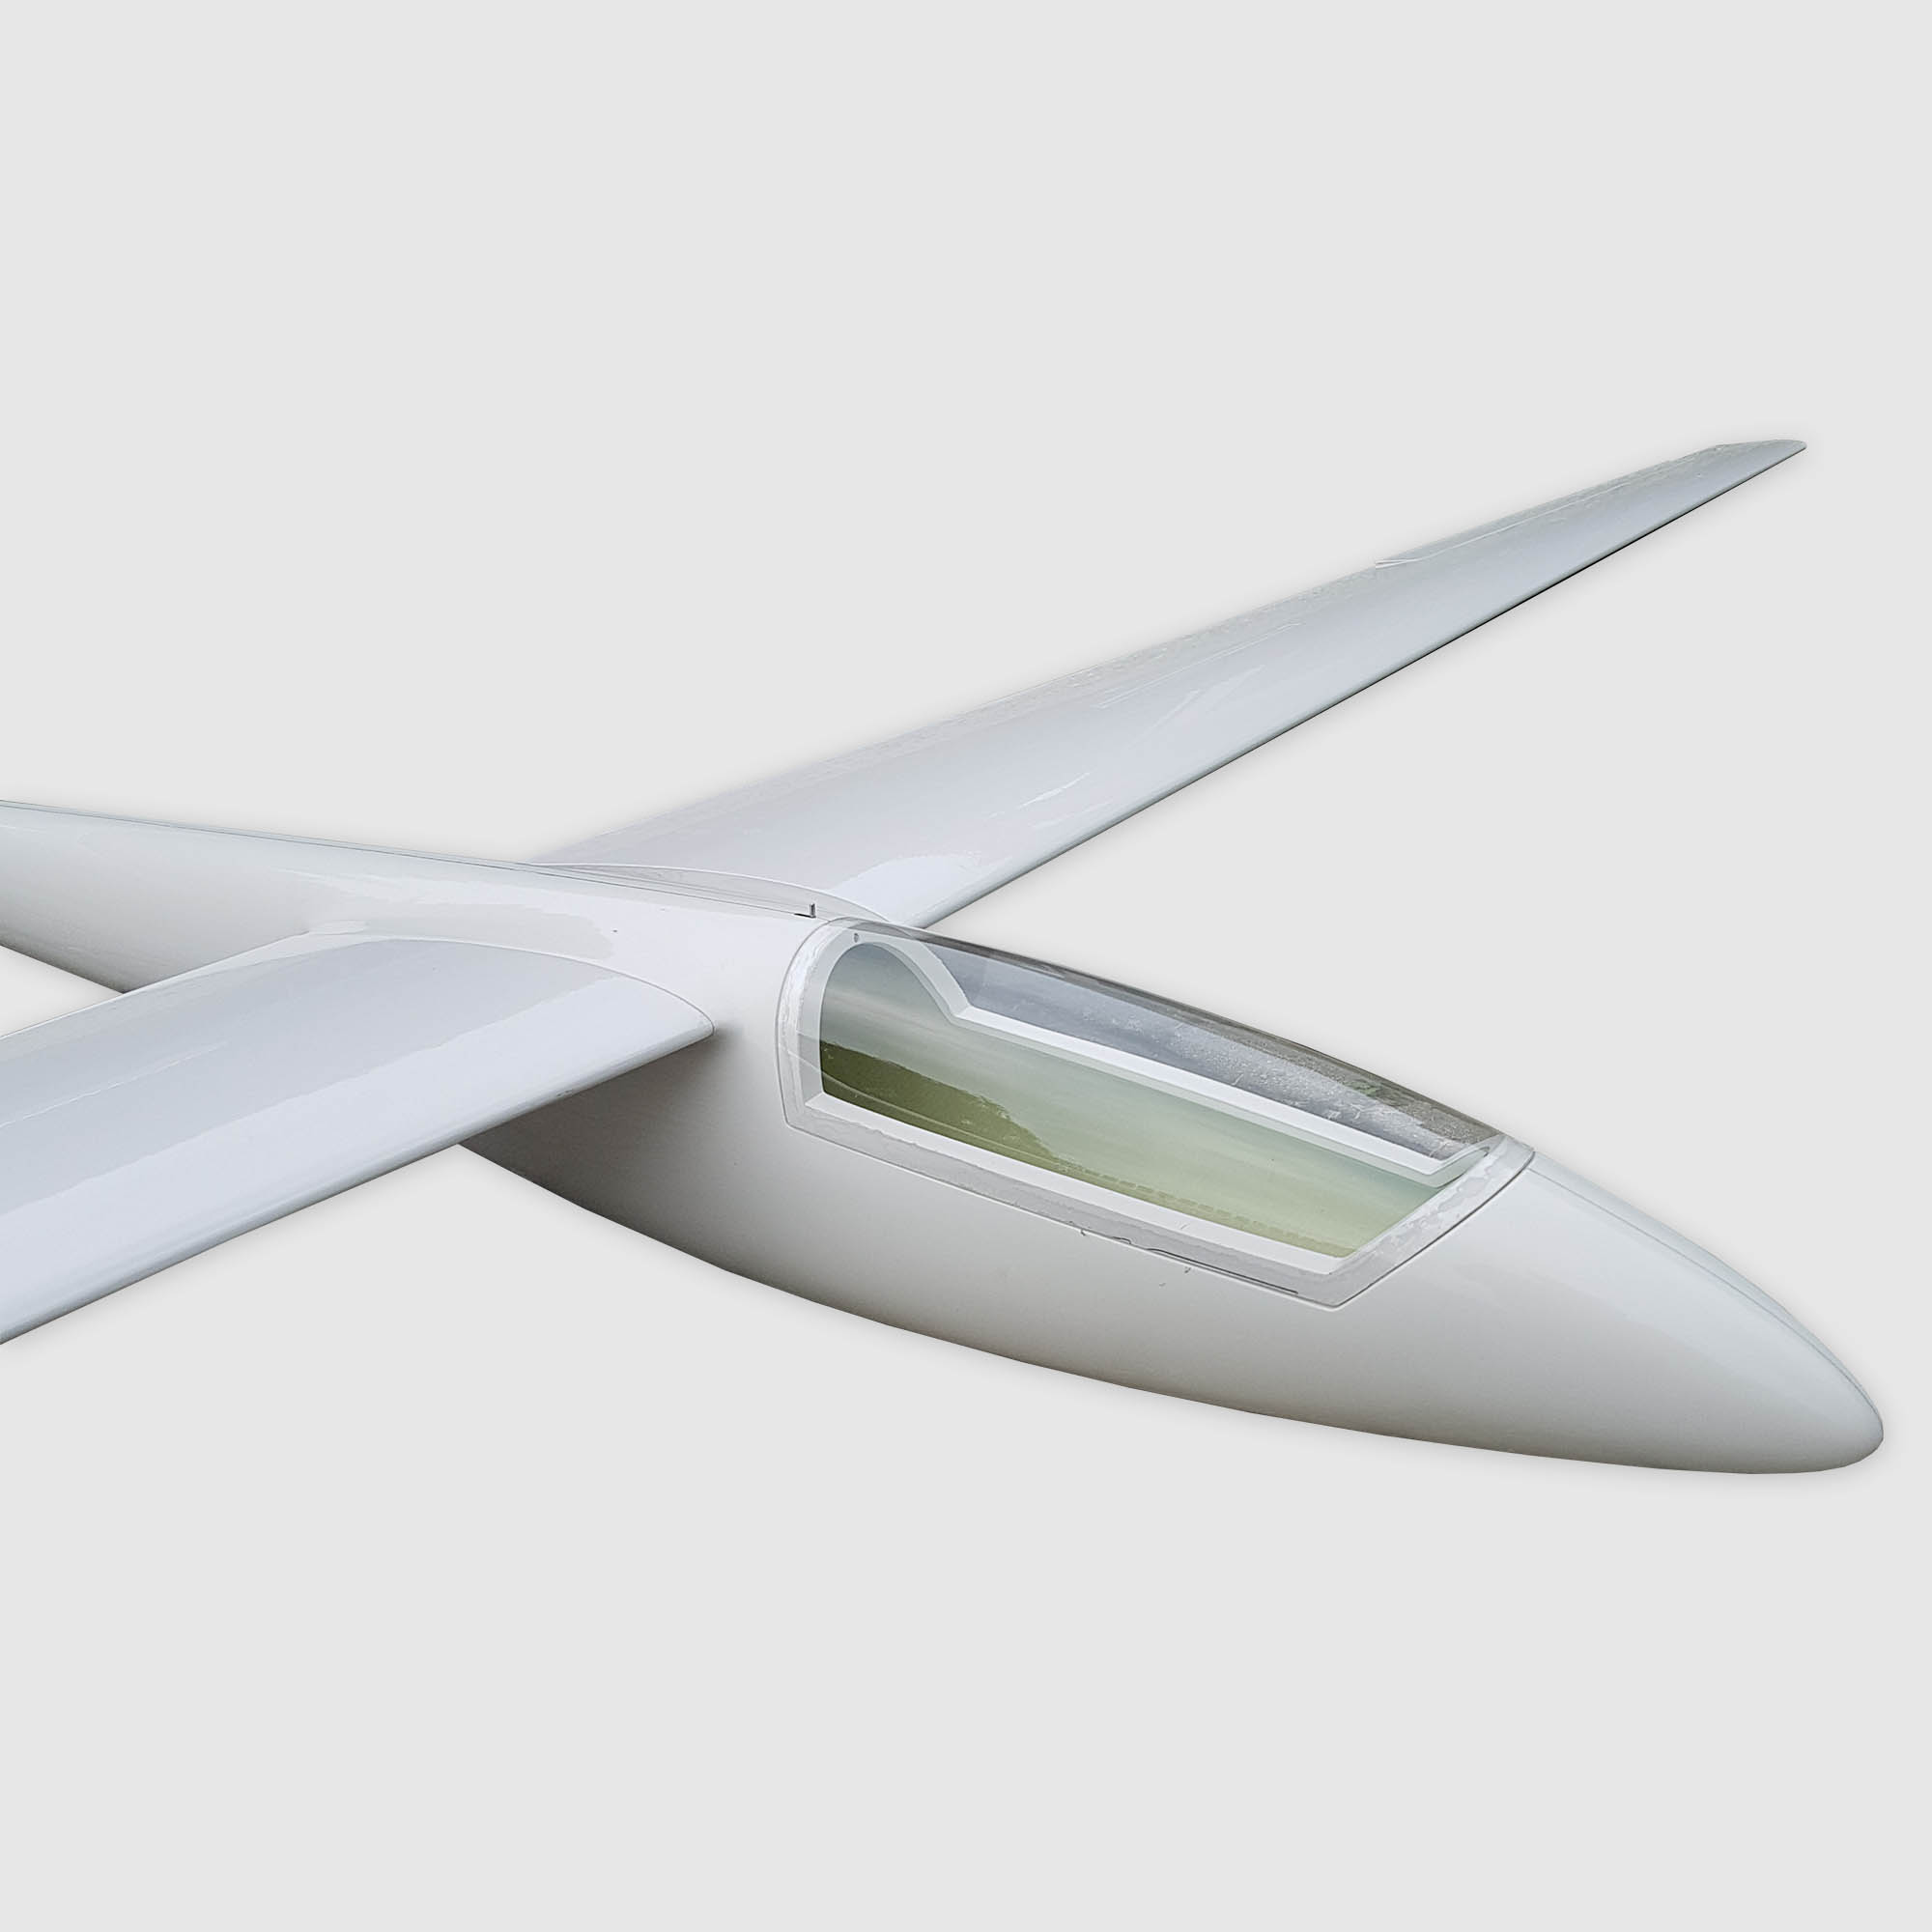 Sailplane model RM SZD-39 Cobra 17 ARF 3,4m - Image 2